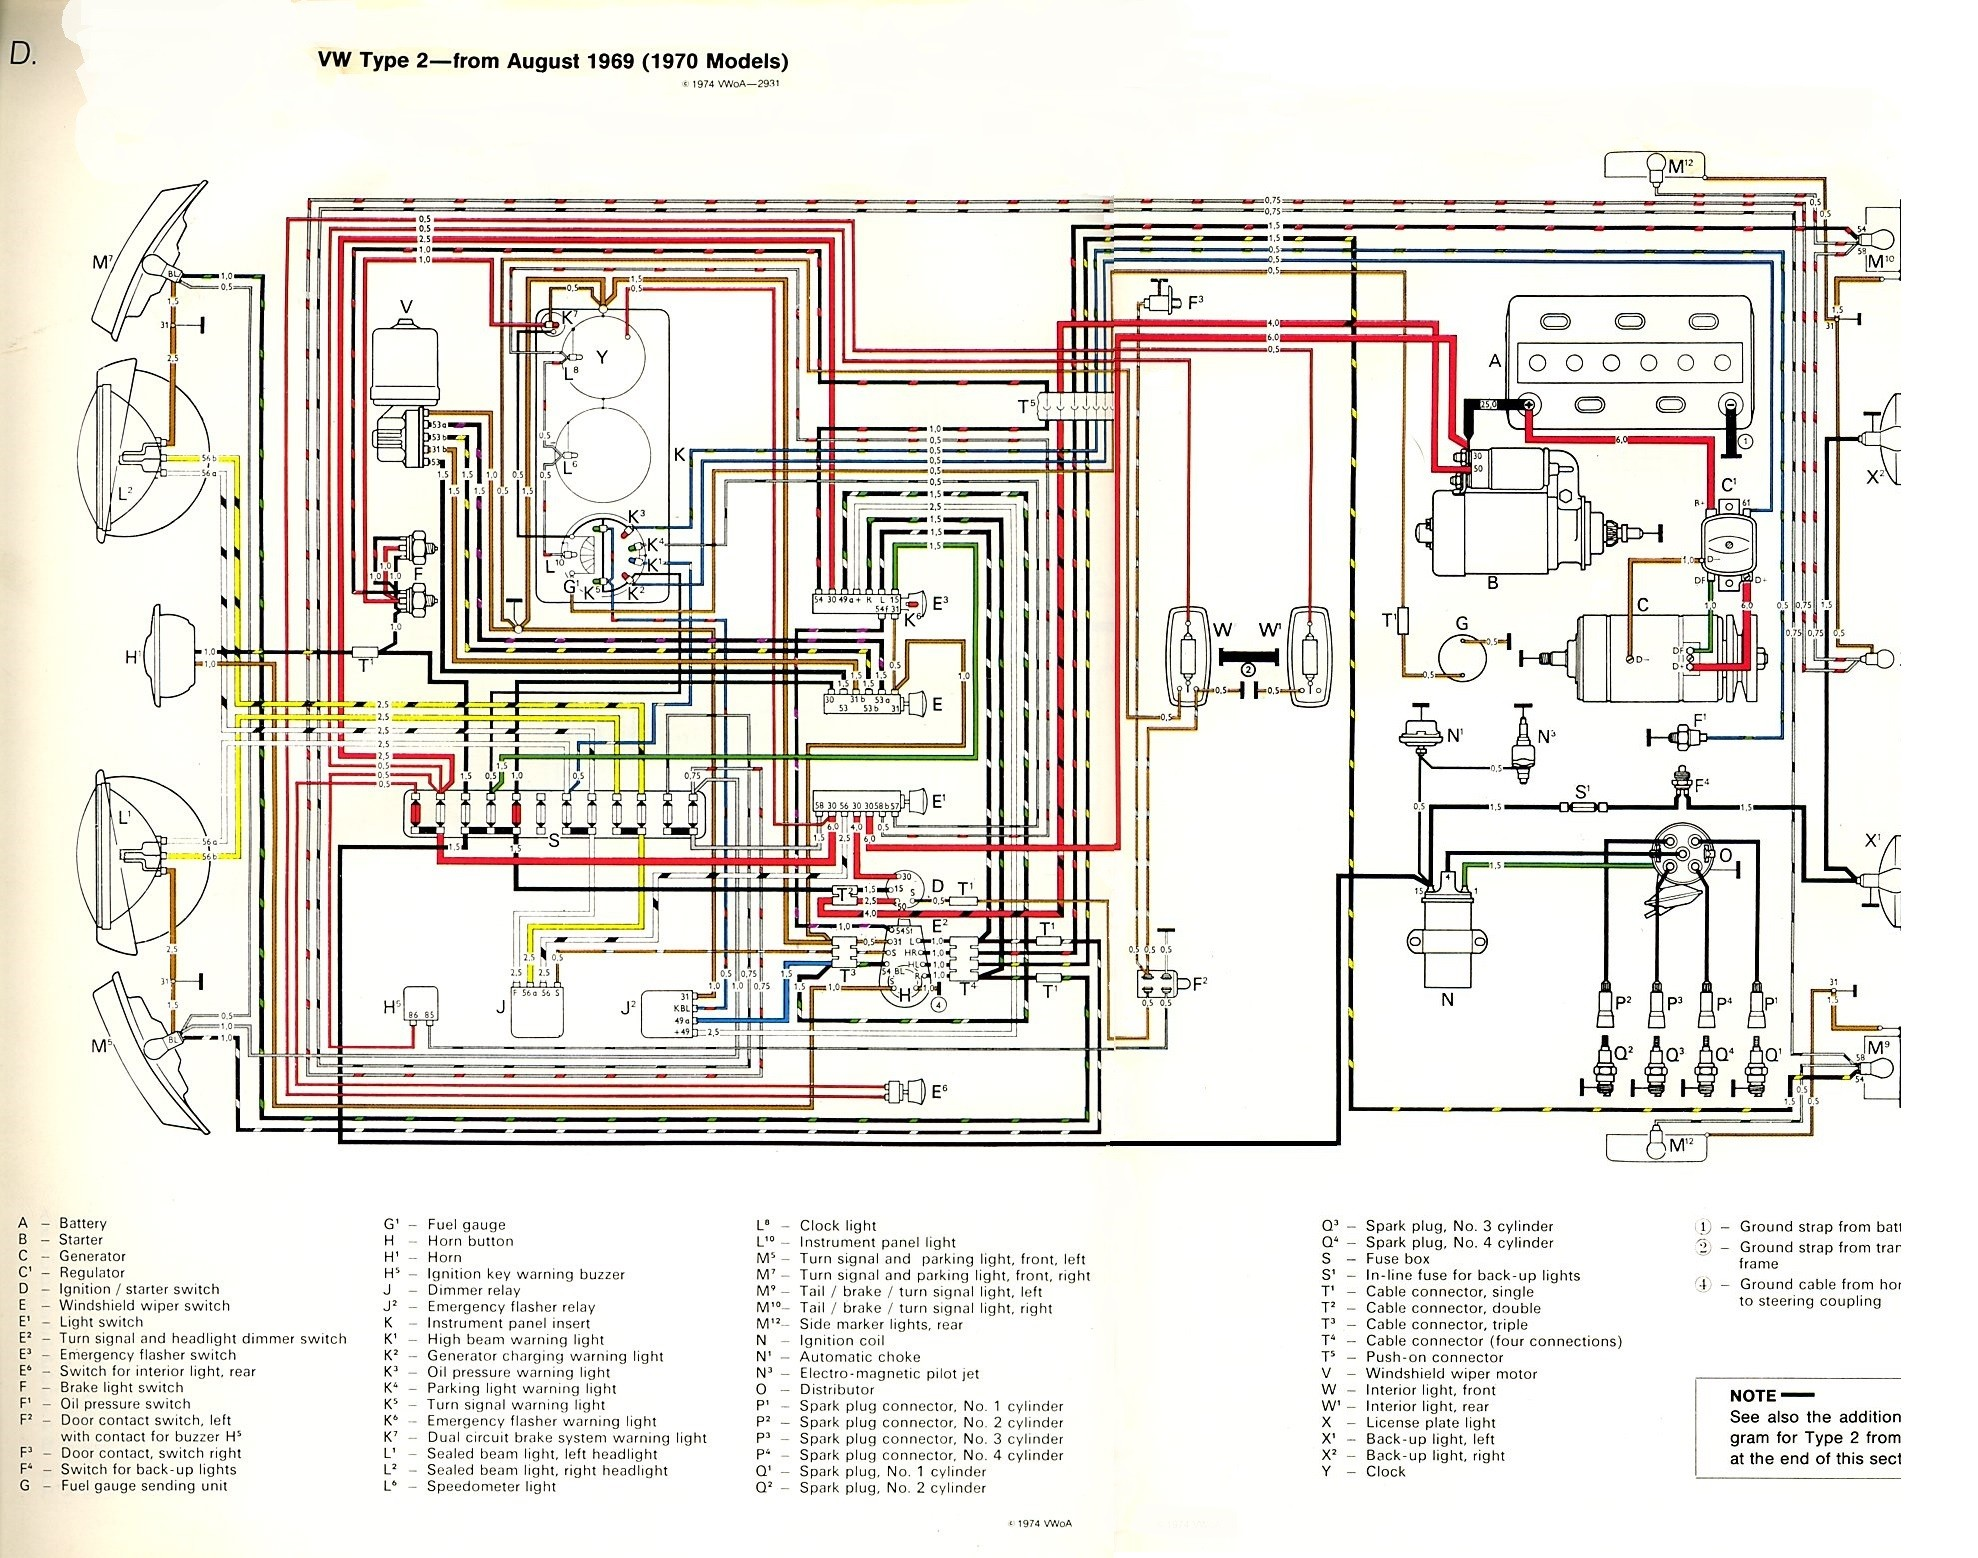 67 camaro fuse box housing wiring diagram portal u2022 rh getcircuitdiagram today 1970 camaro fuse box location 1970 camaro fuse box location